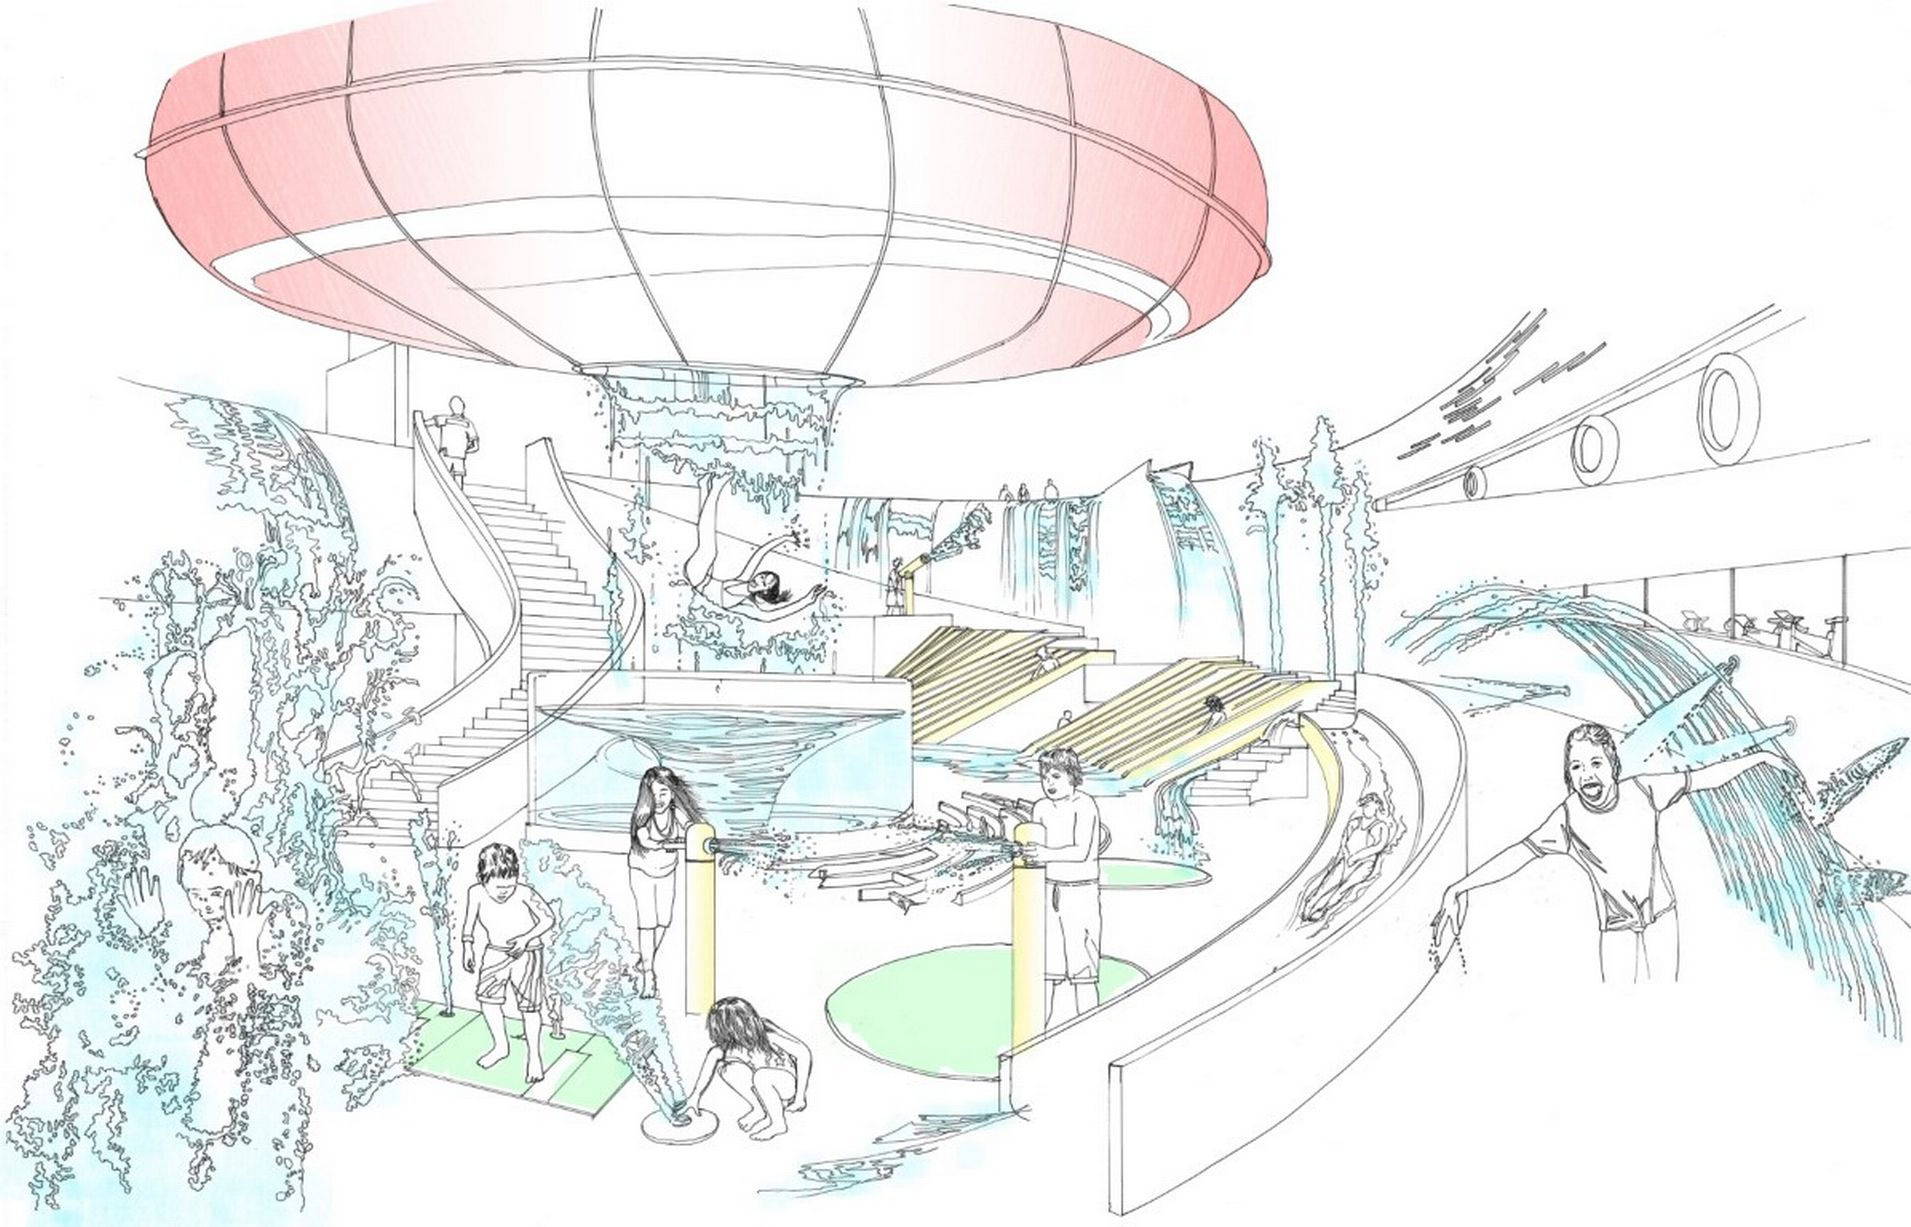 Coventry Water Park drawing